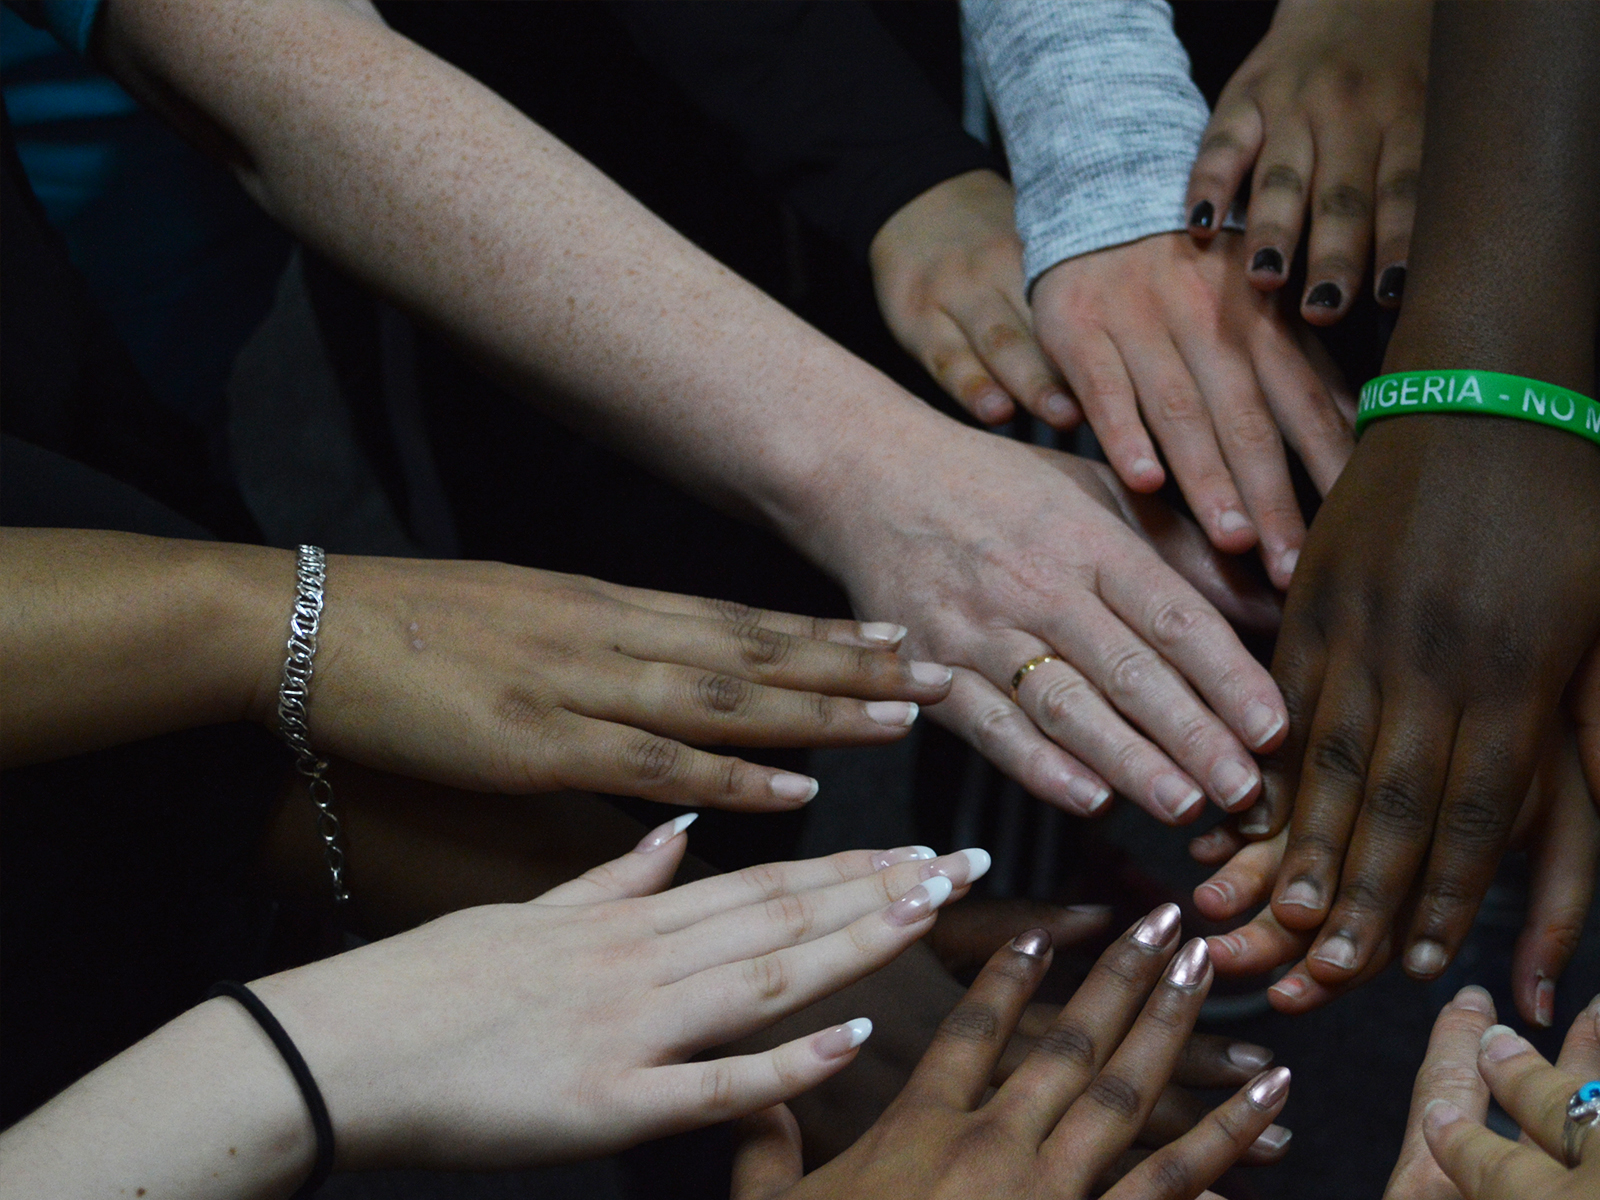 Nine girls' hands are shown – white, black and brown skinned - coming together in a circle.